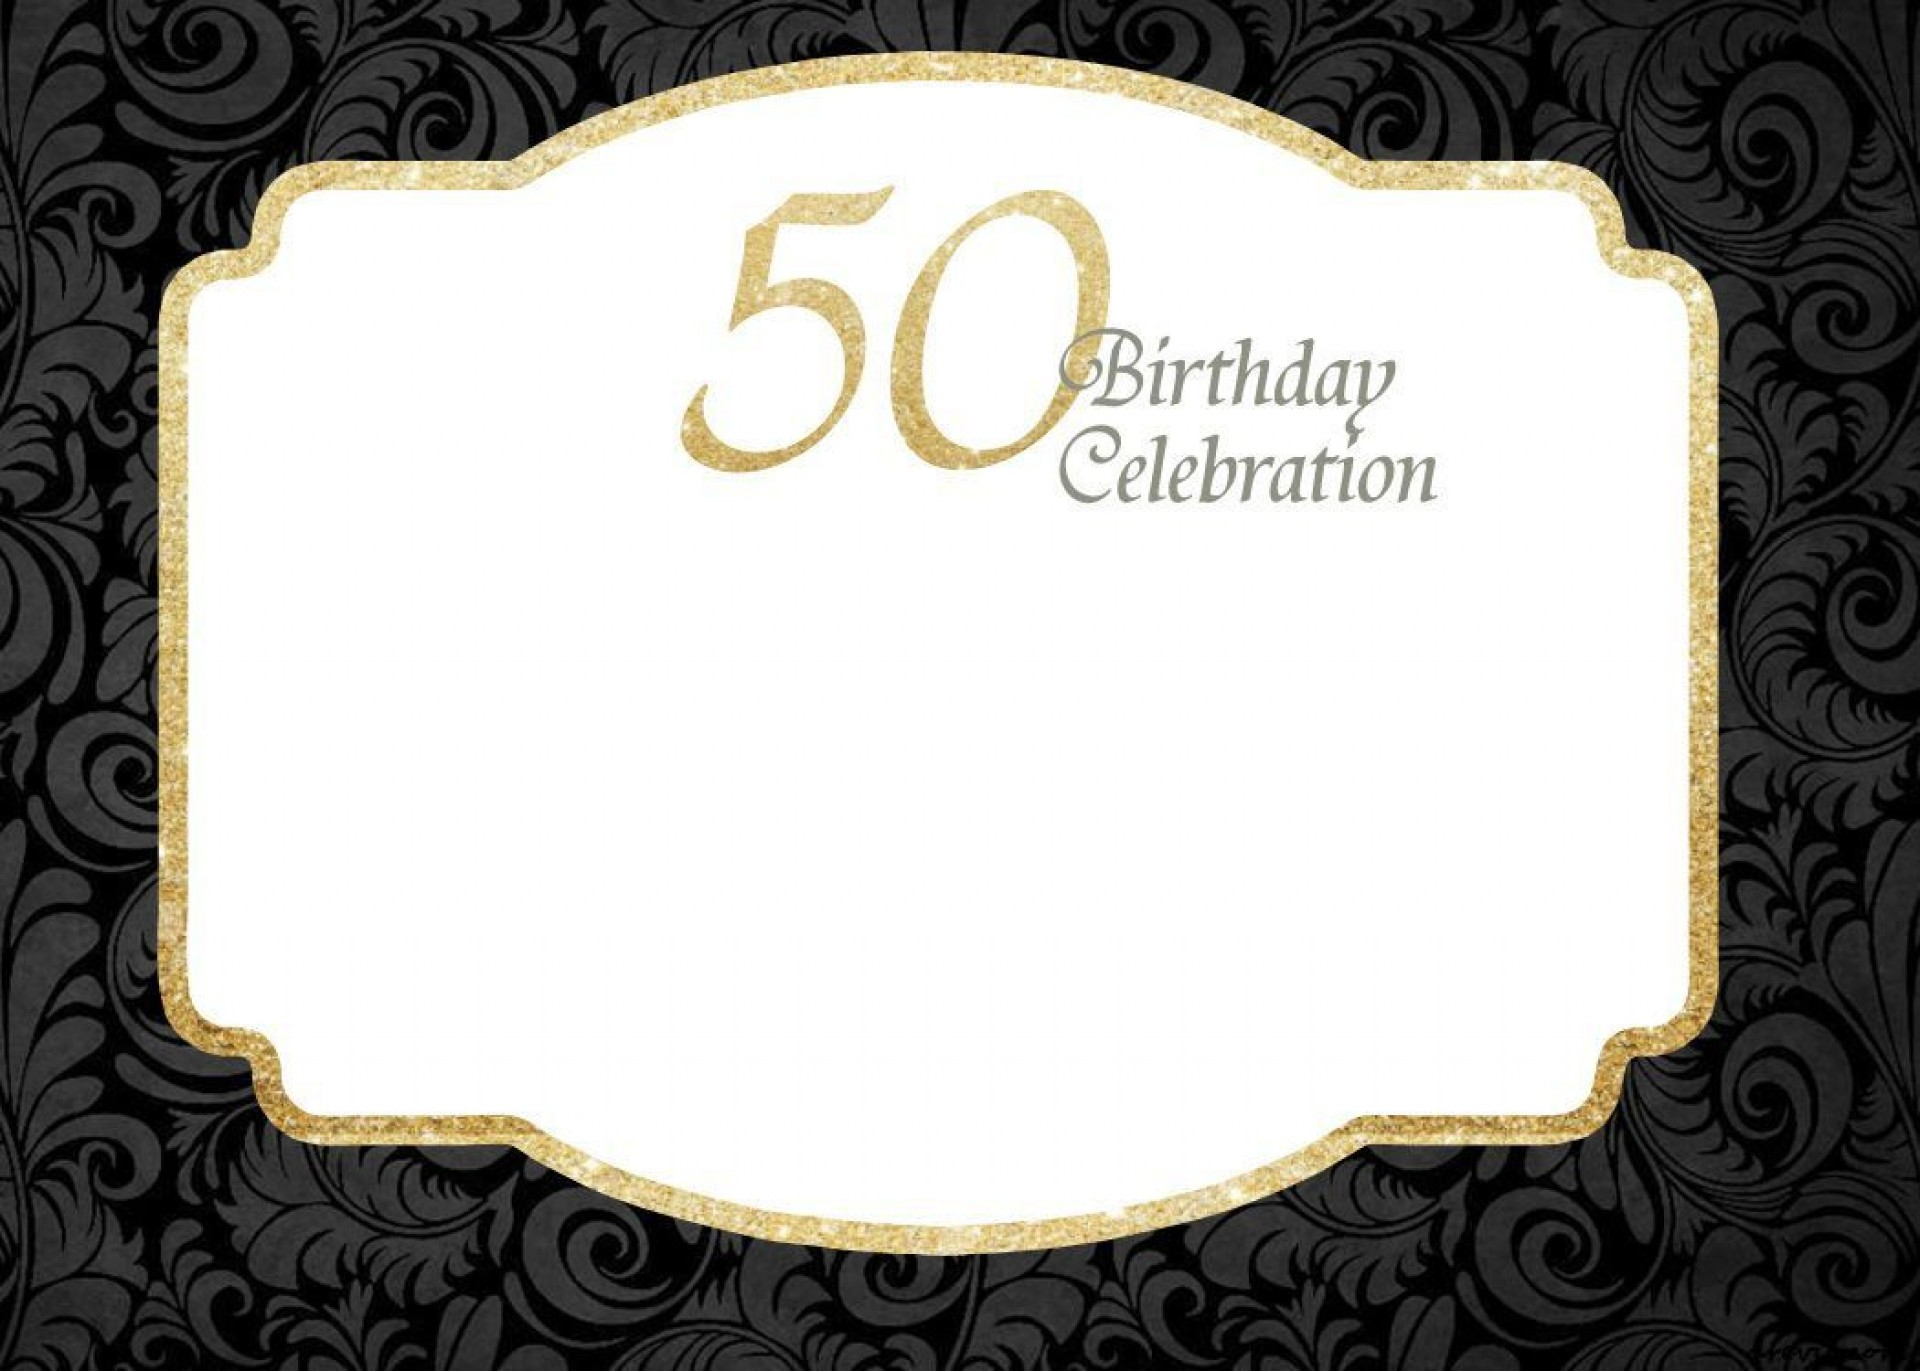 000 Rare 50th Birthday Invitation Template Idea  For Him Microsoft Word Free1920